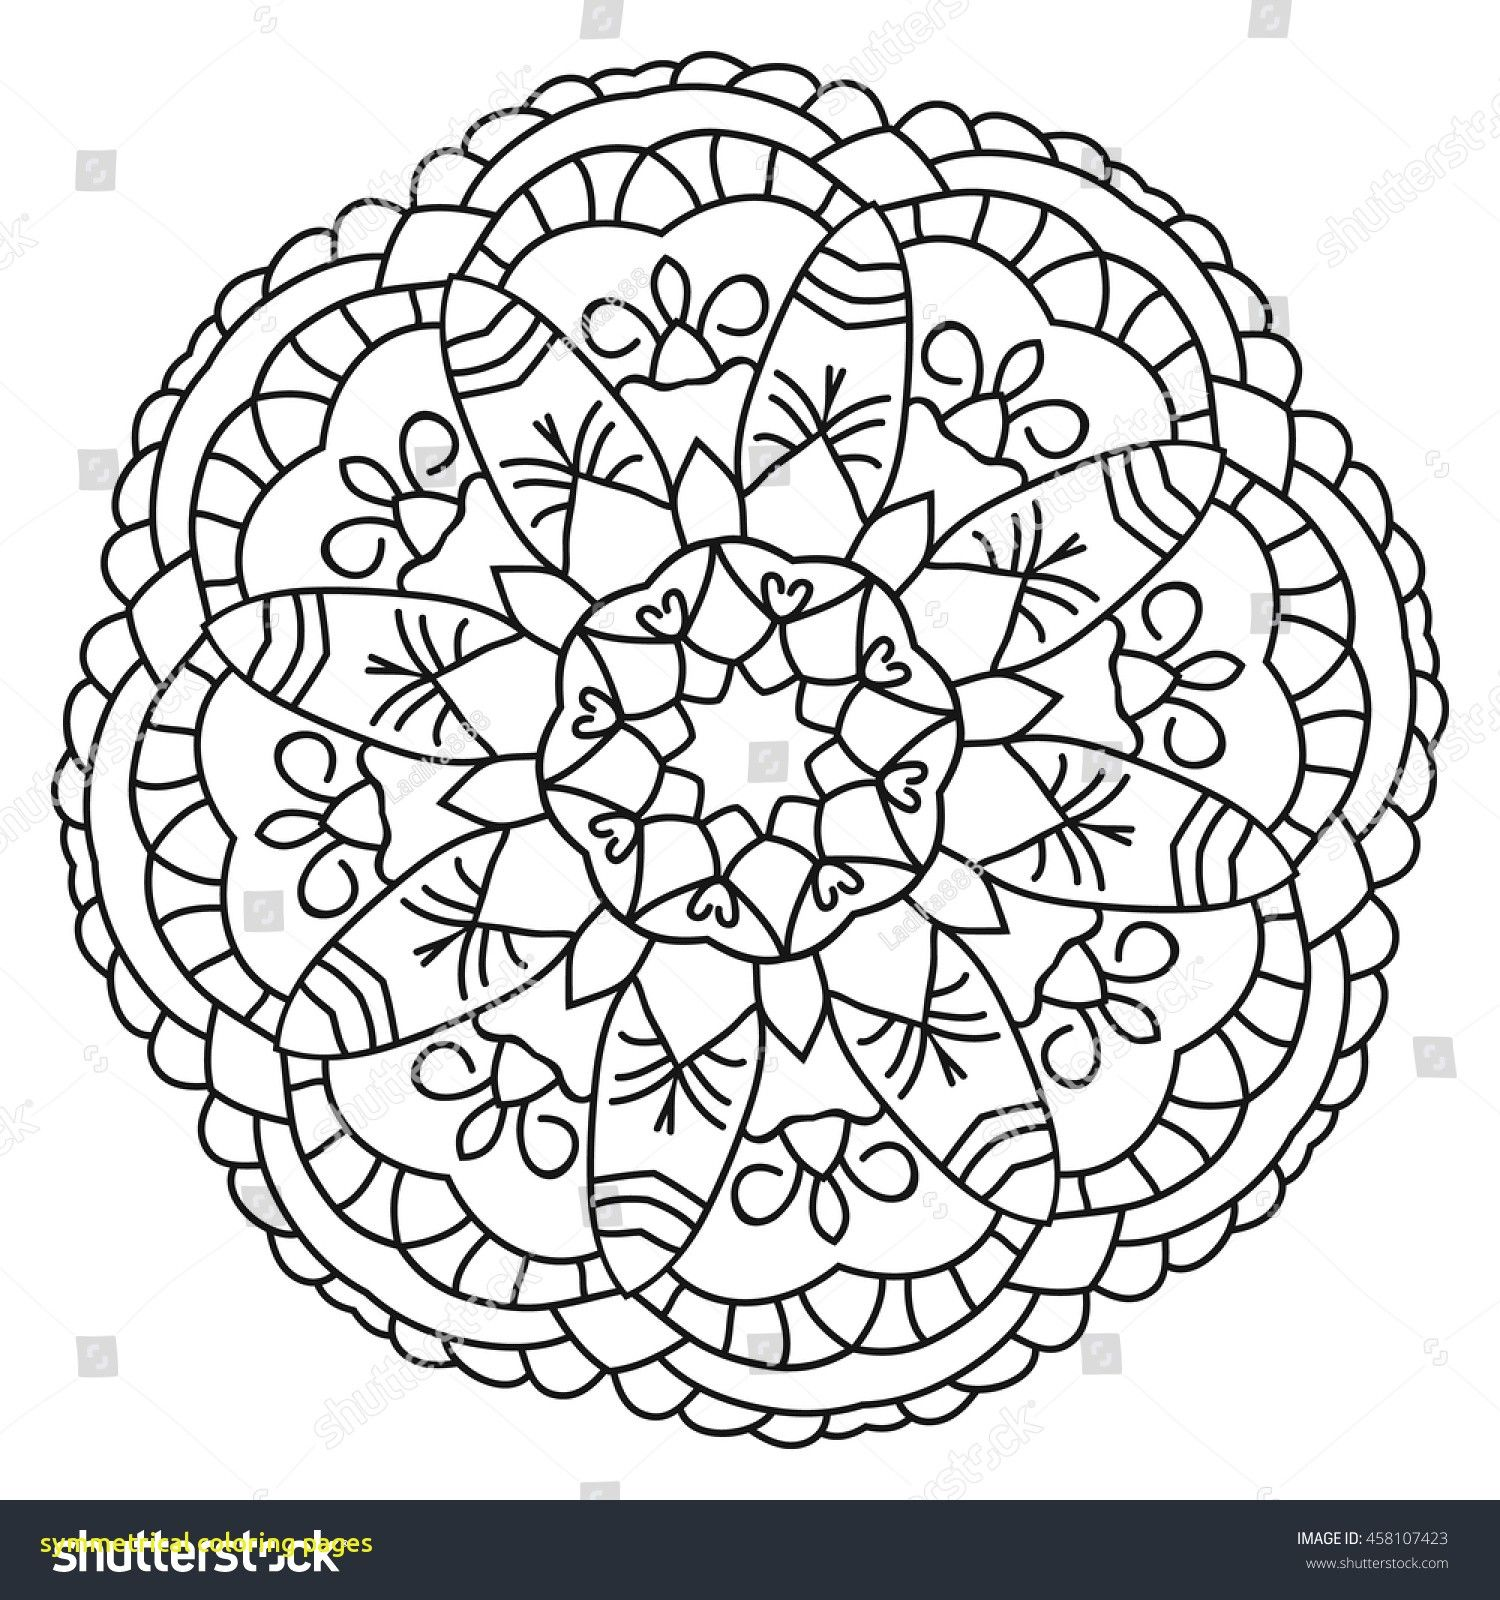 1500x1600 Astonishing Symmetrical Coloring Pages With Printable Kaleidoscope